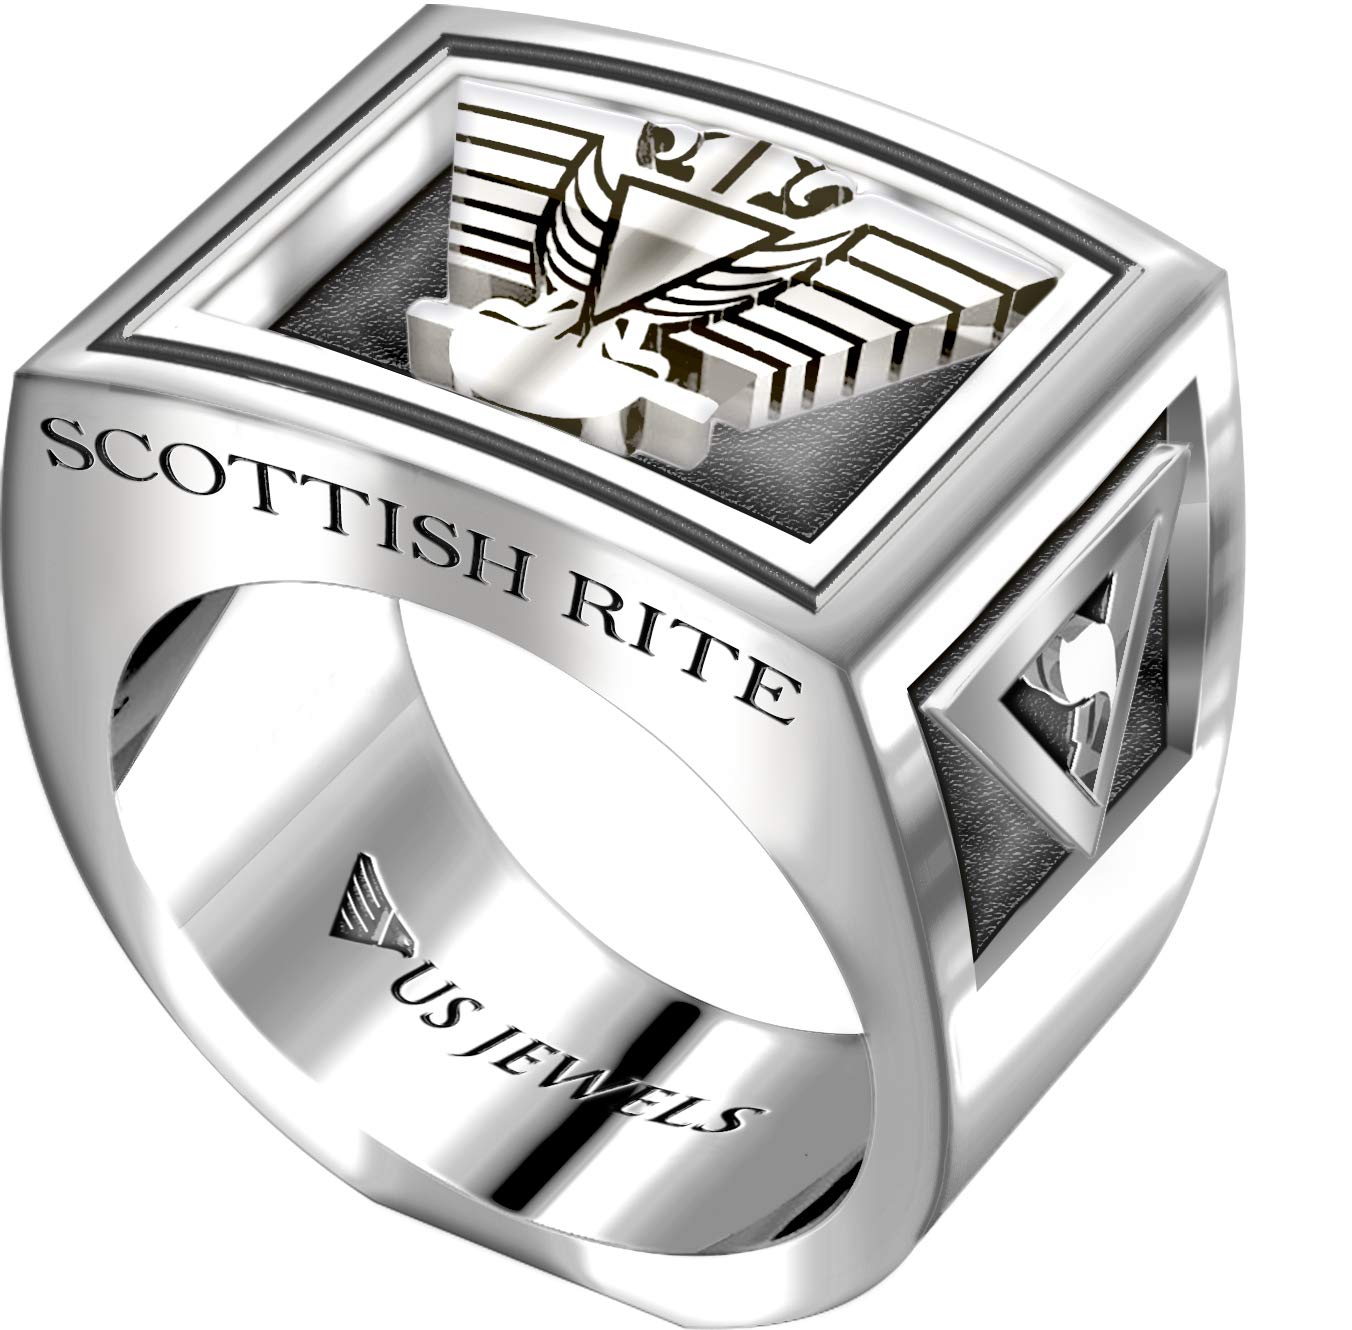 US Jewels And Gems Men's Heavy 0.925 Sterling Silver Freemason Scottish Rite Ring Band, Size 10 by US Jewels And Gems (Image #2)